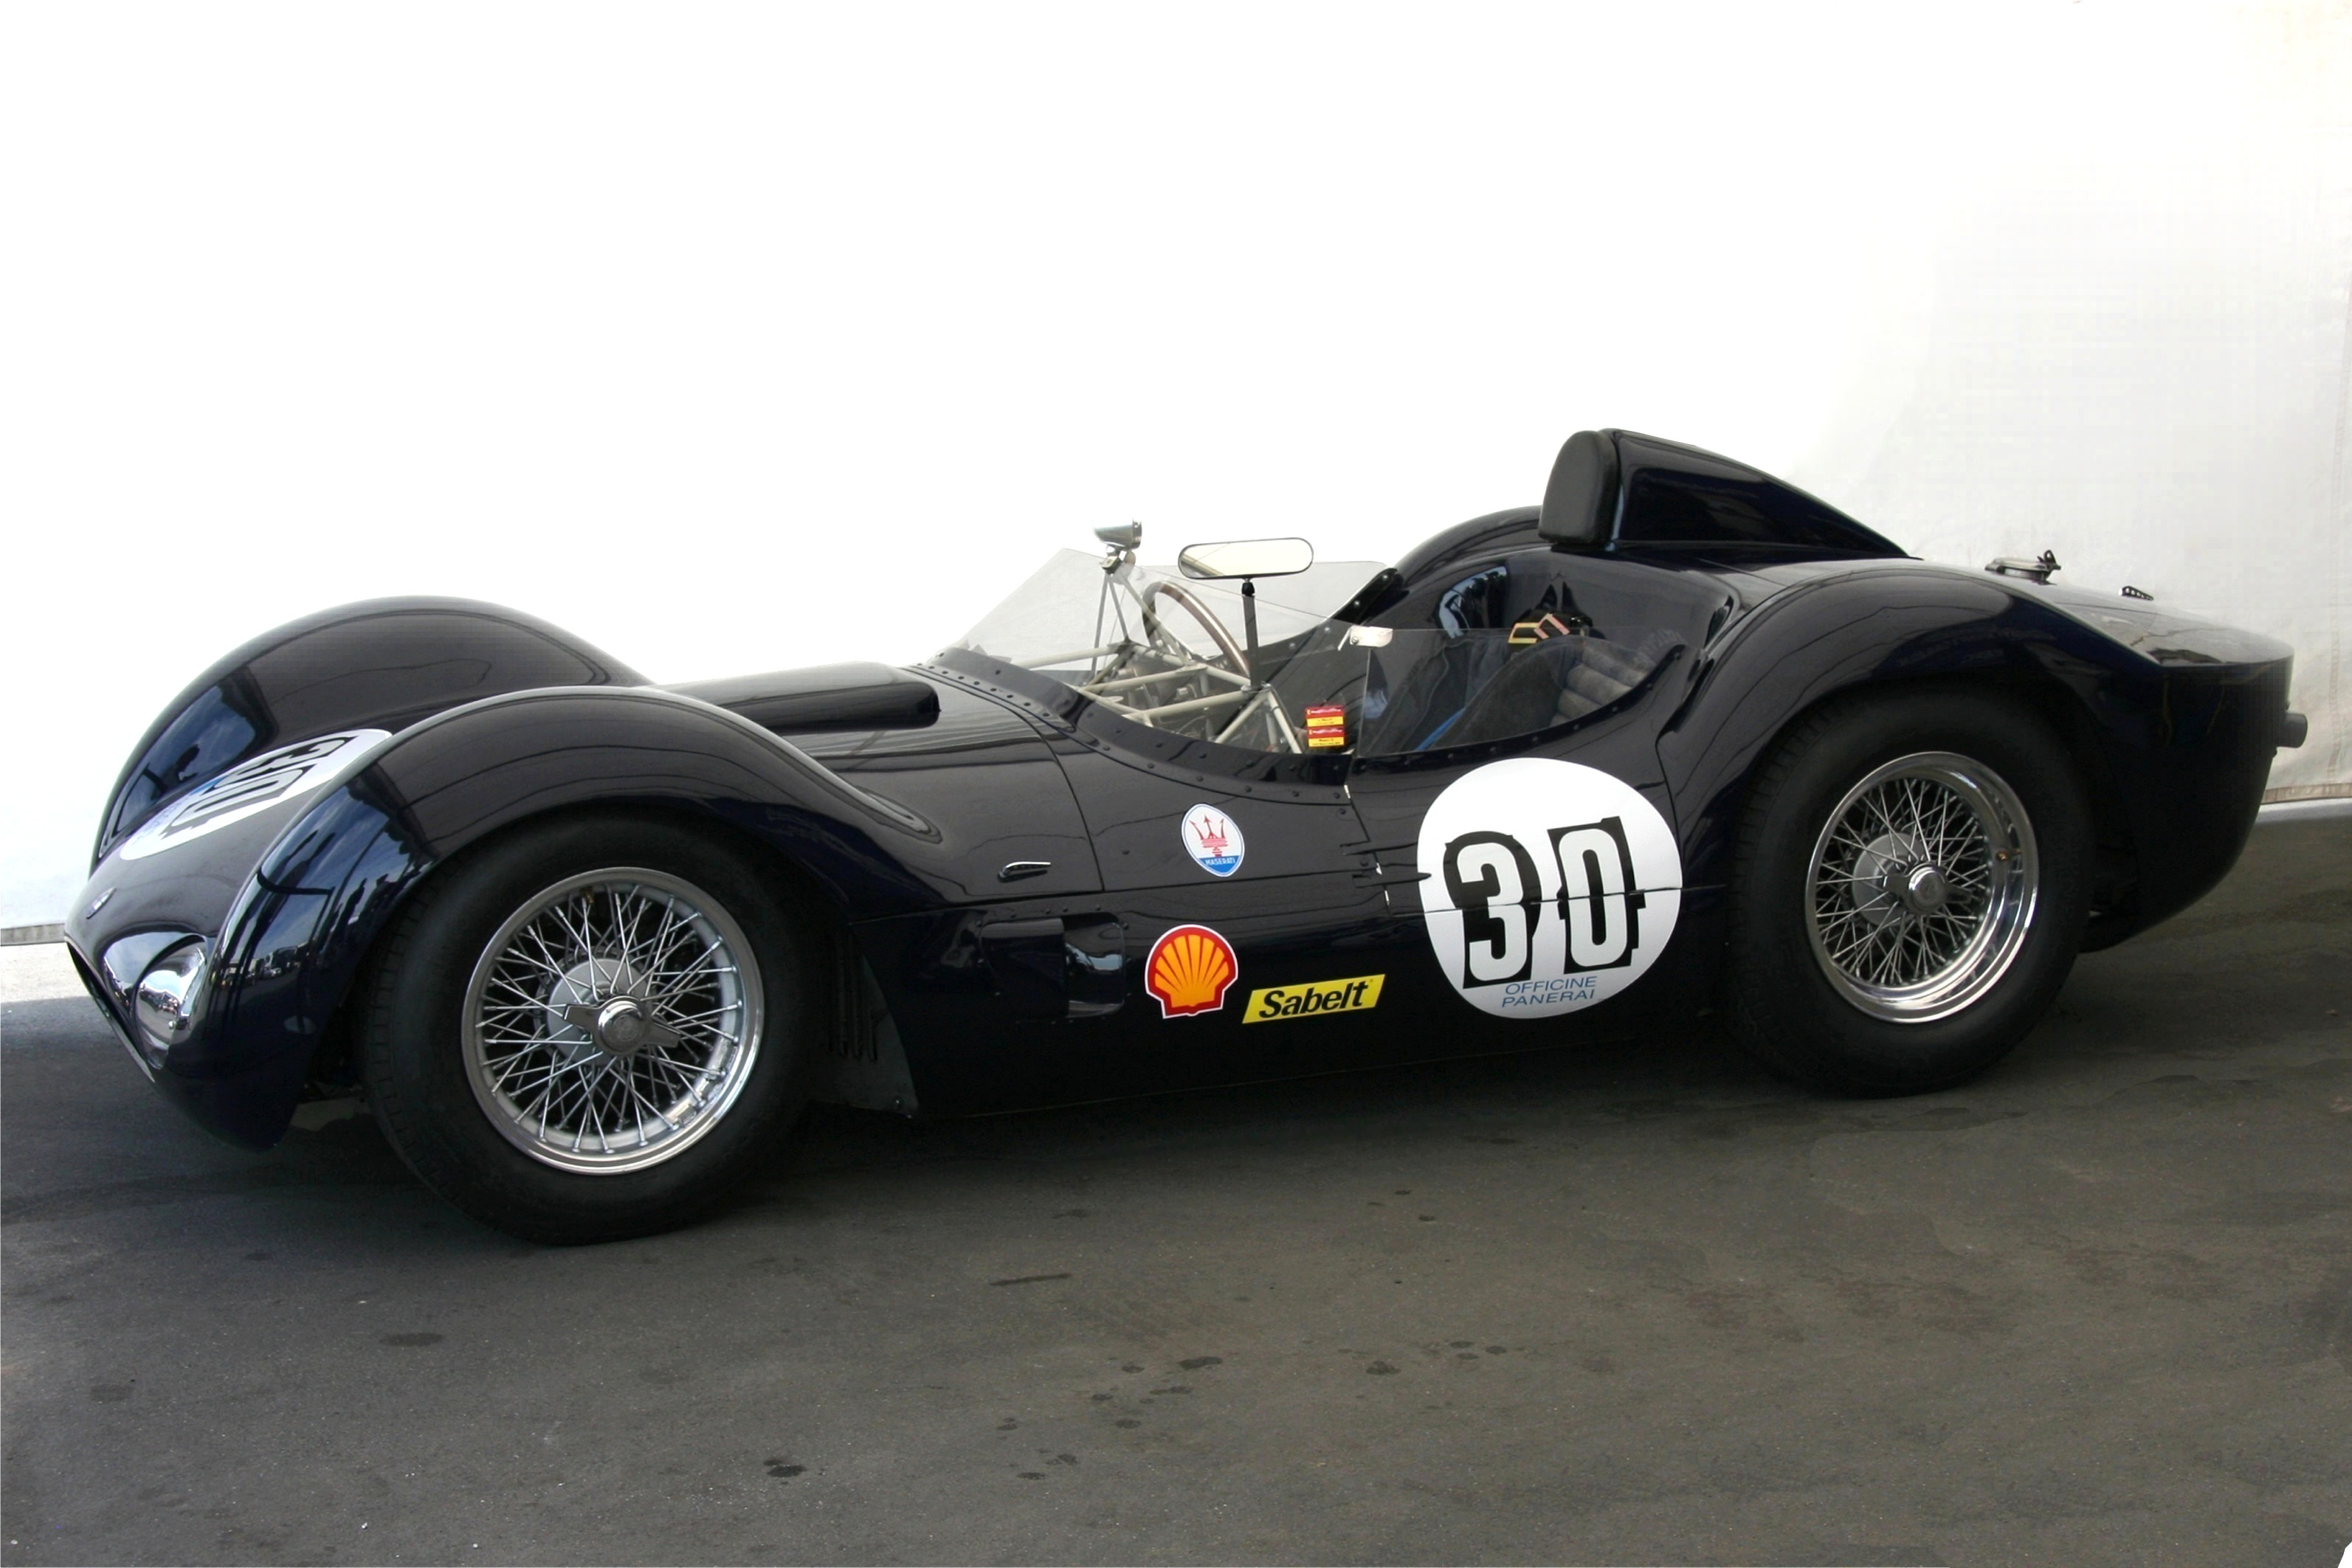 82 The Best Maserati Tipo 61 Birdcage Performance